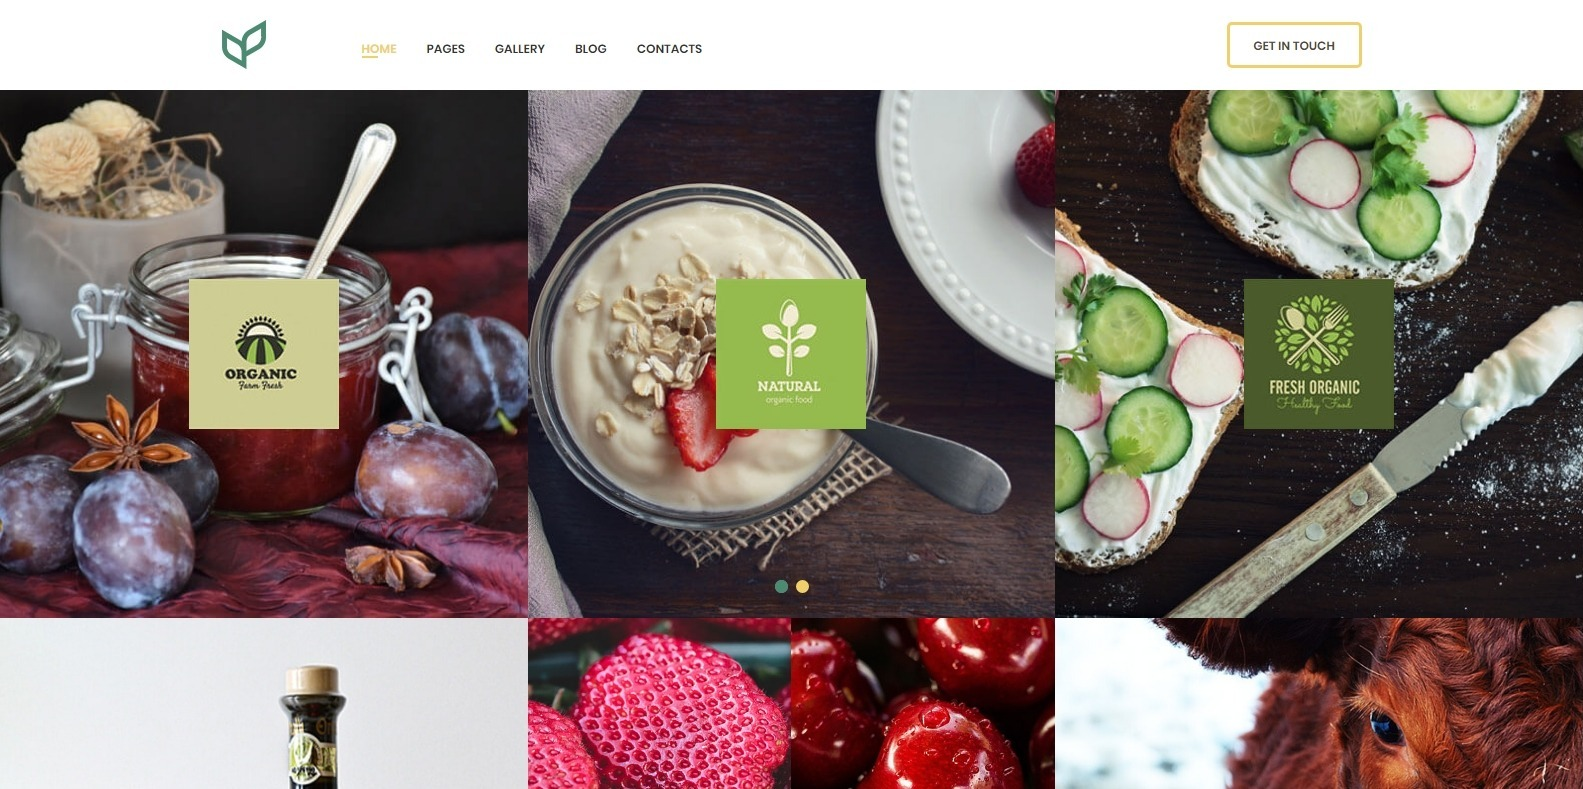 agricom-food-blog-website-template